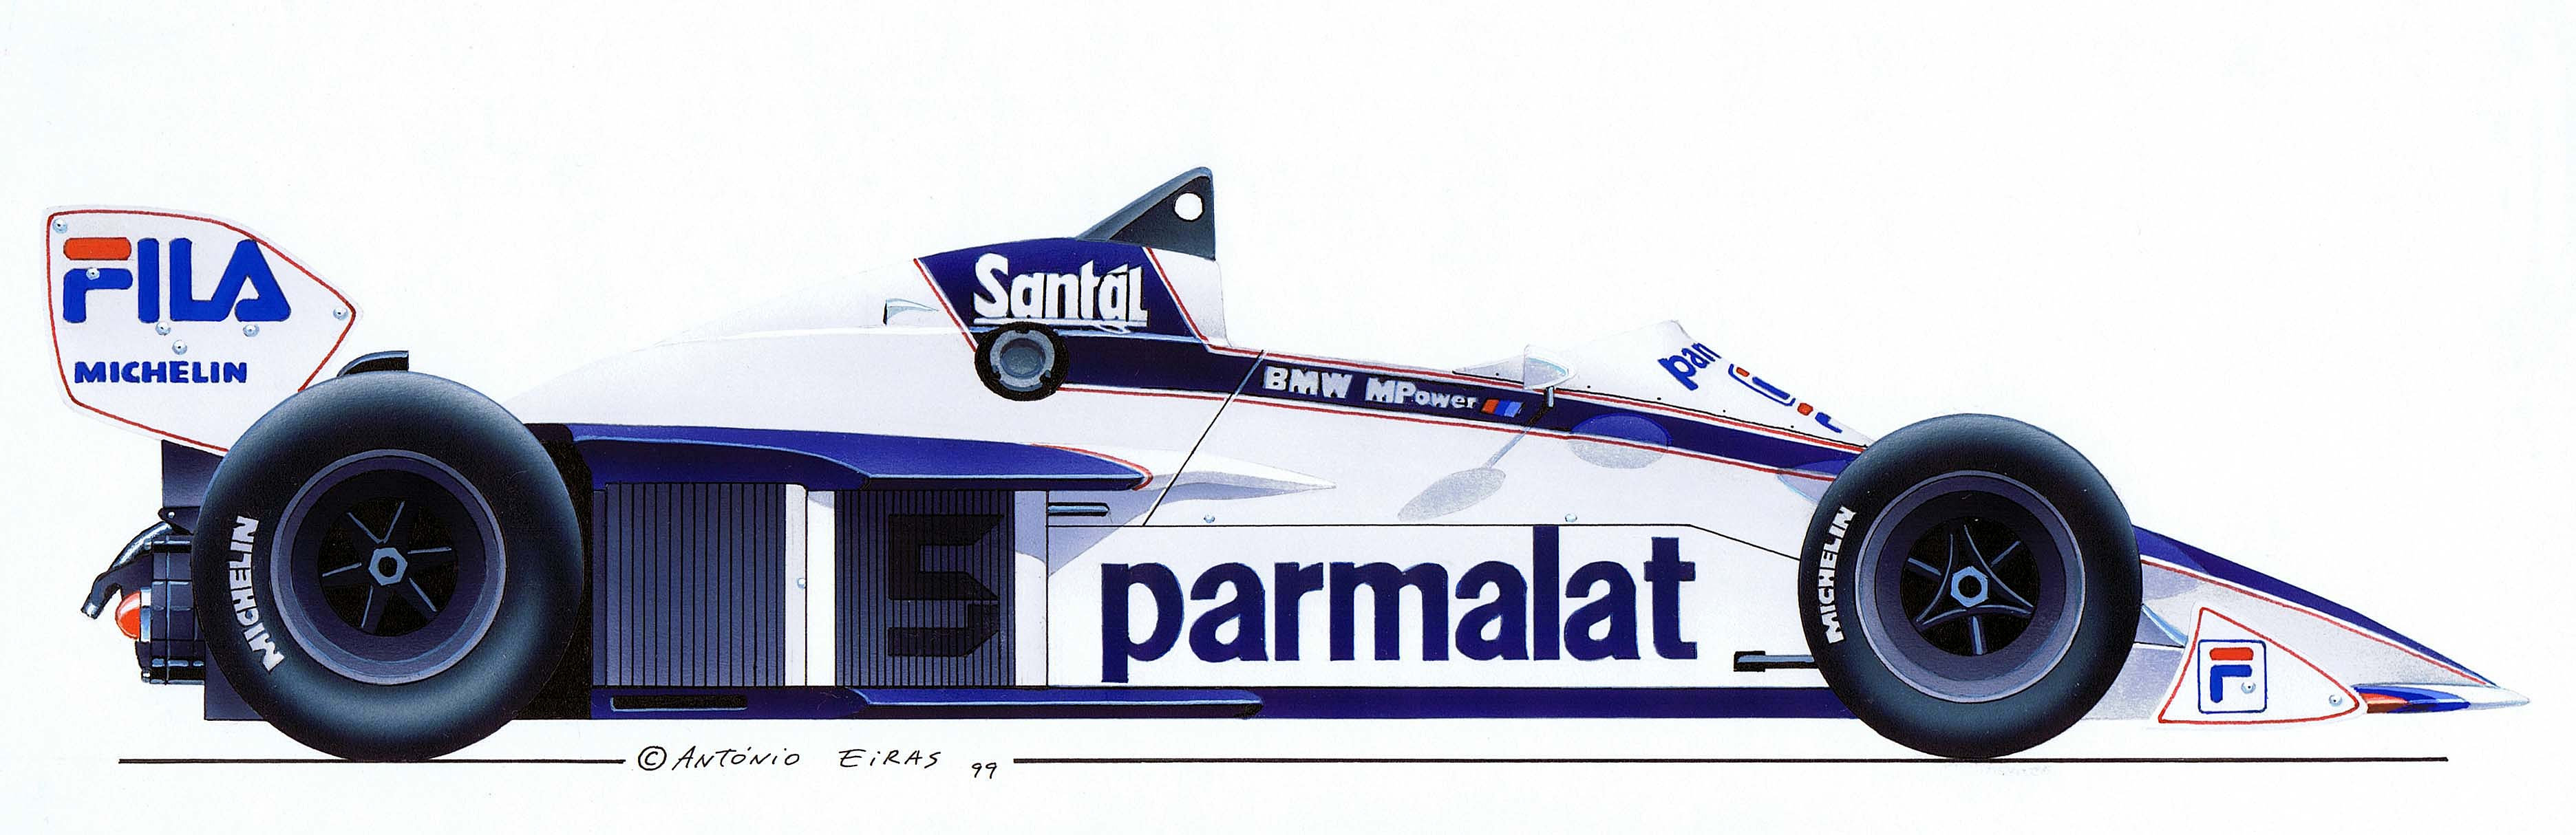 Antnio Eiras Brabham Bt51 Bmw HD Wallpapers Download free images and photos [musssic.tk]